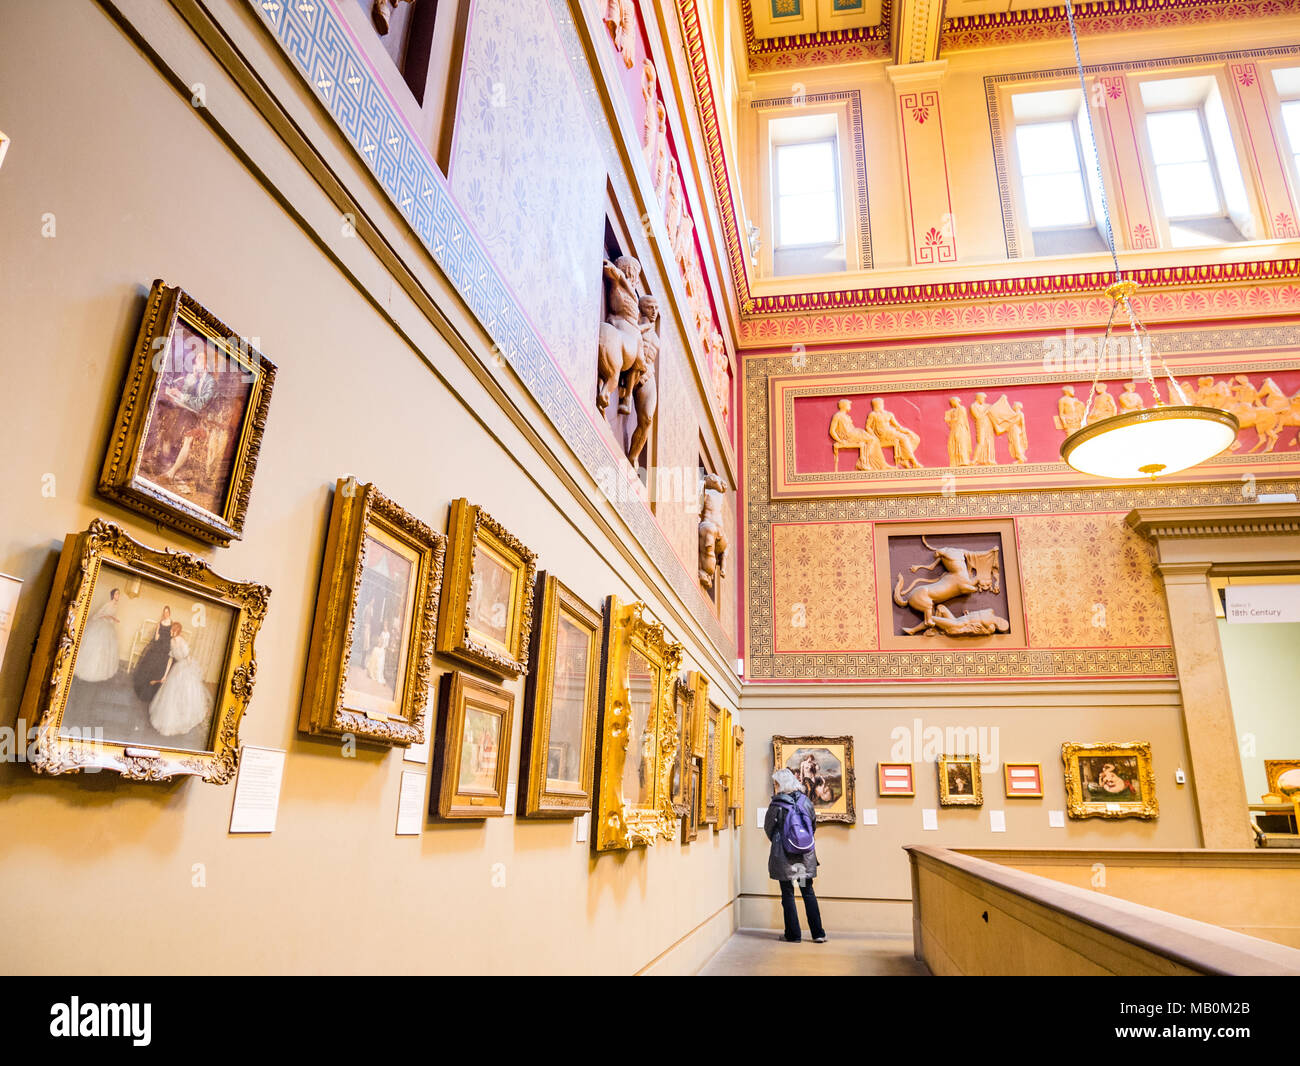 Manchester Art Gallery, UK - Stock Image